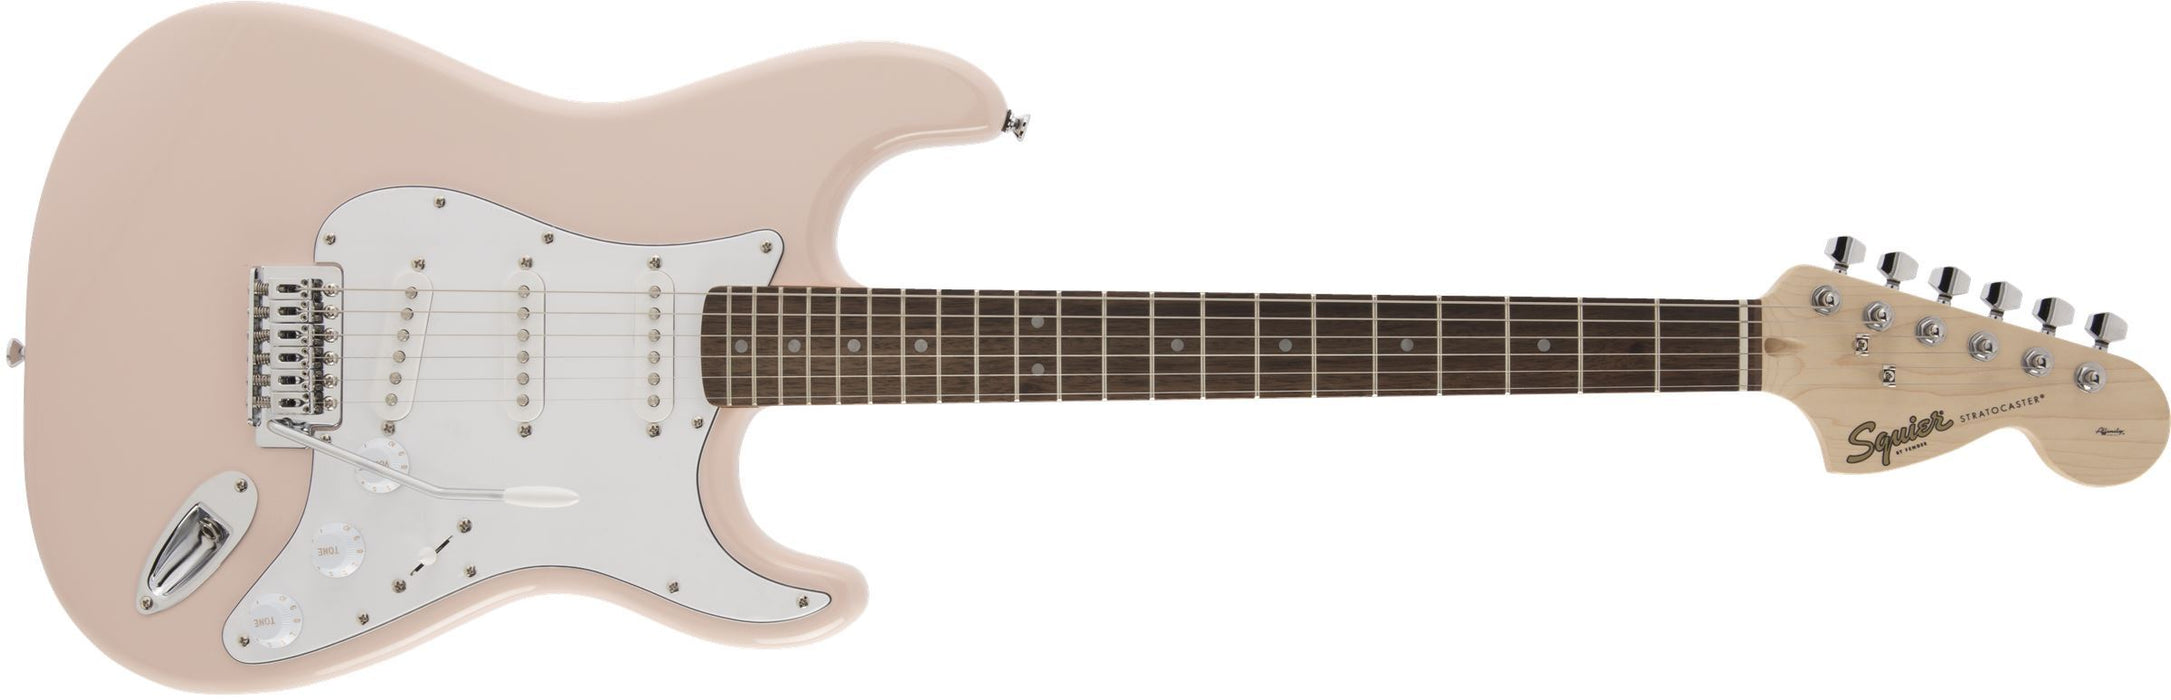 Squier Squier FSR Affinity Series Stratocaster - Shell Pink - Guitar Station Melbourne, Australia